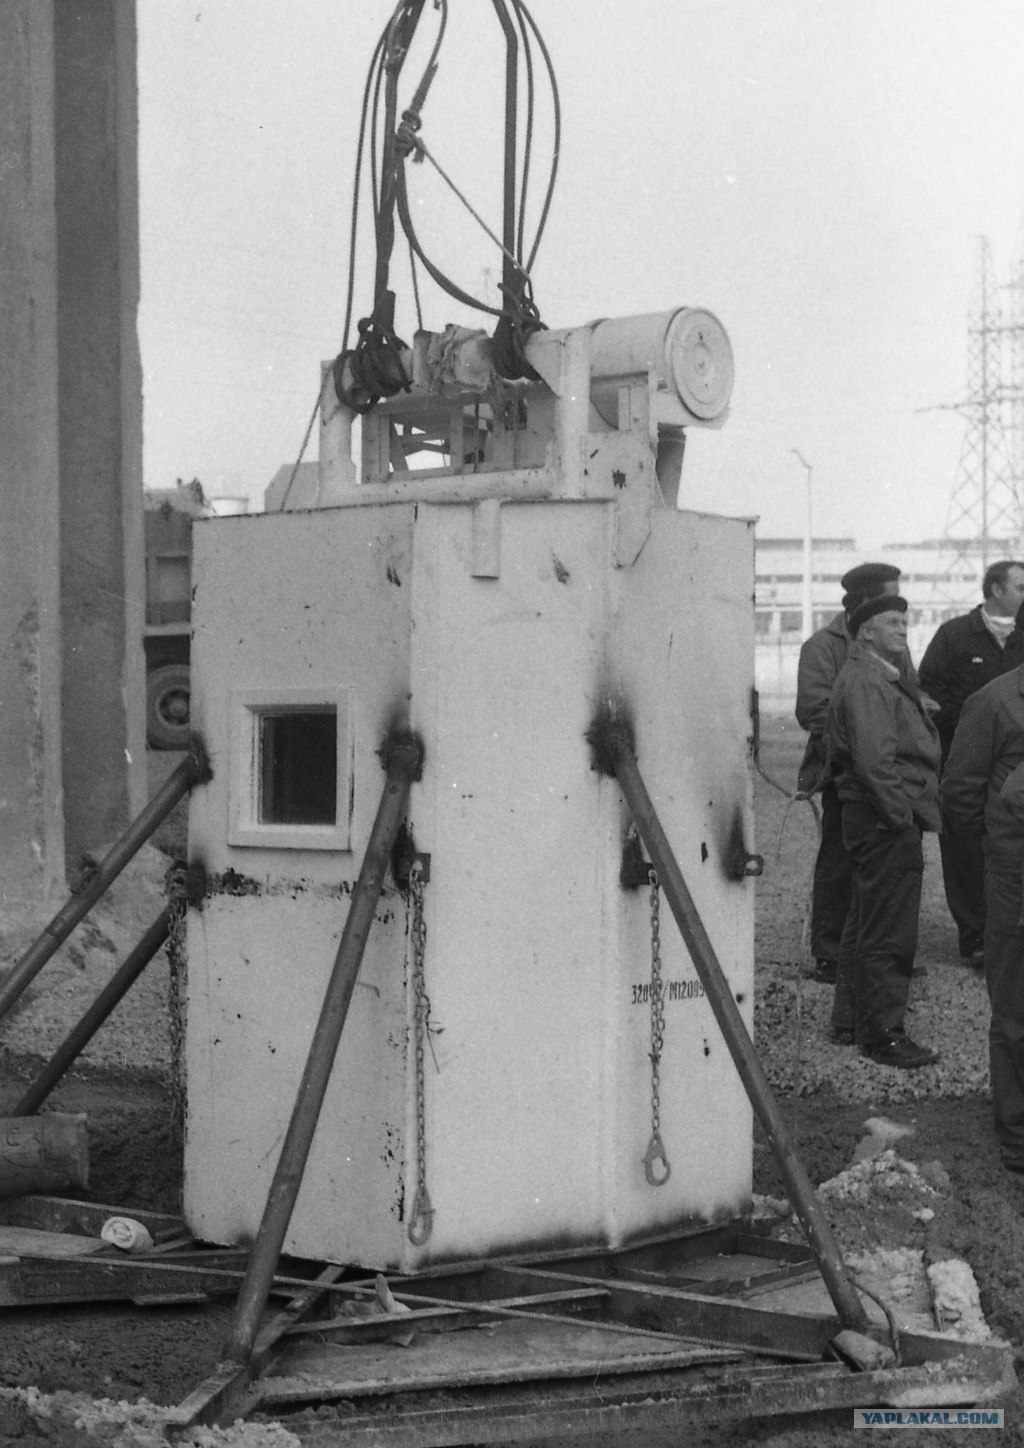 Timeline of events | The Chernobyl Gallery